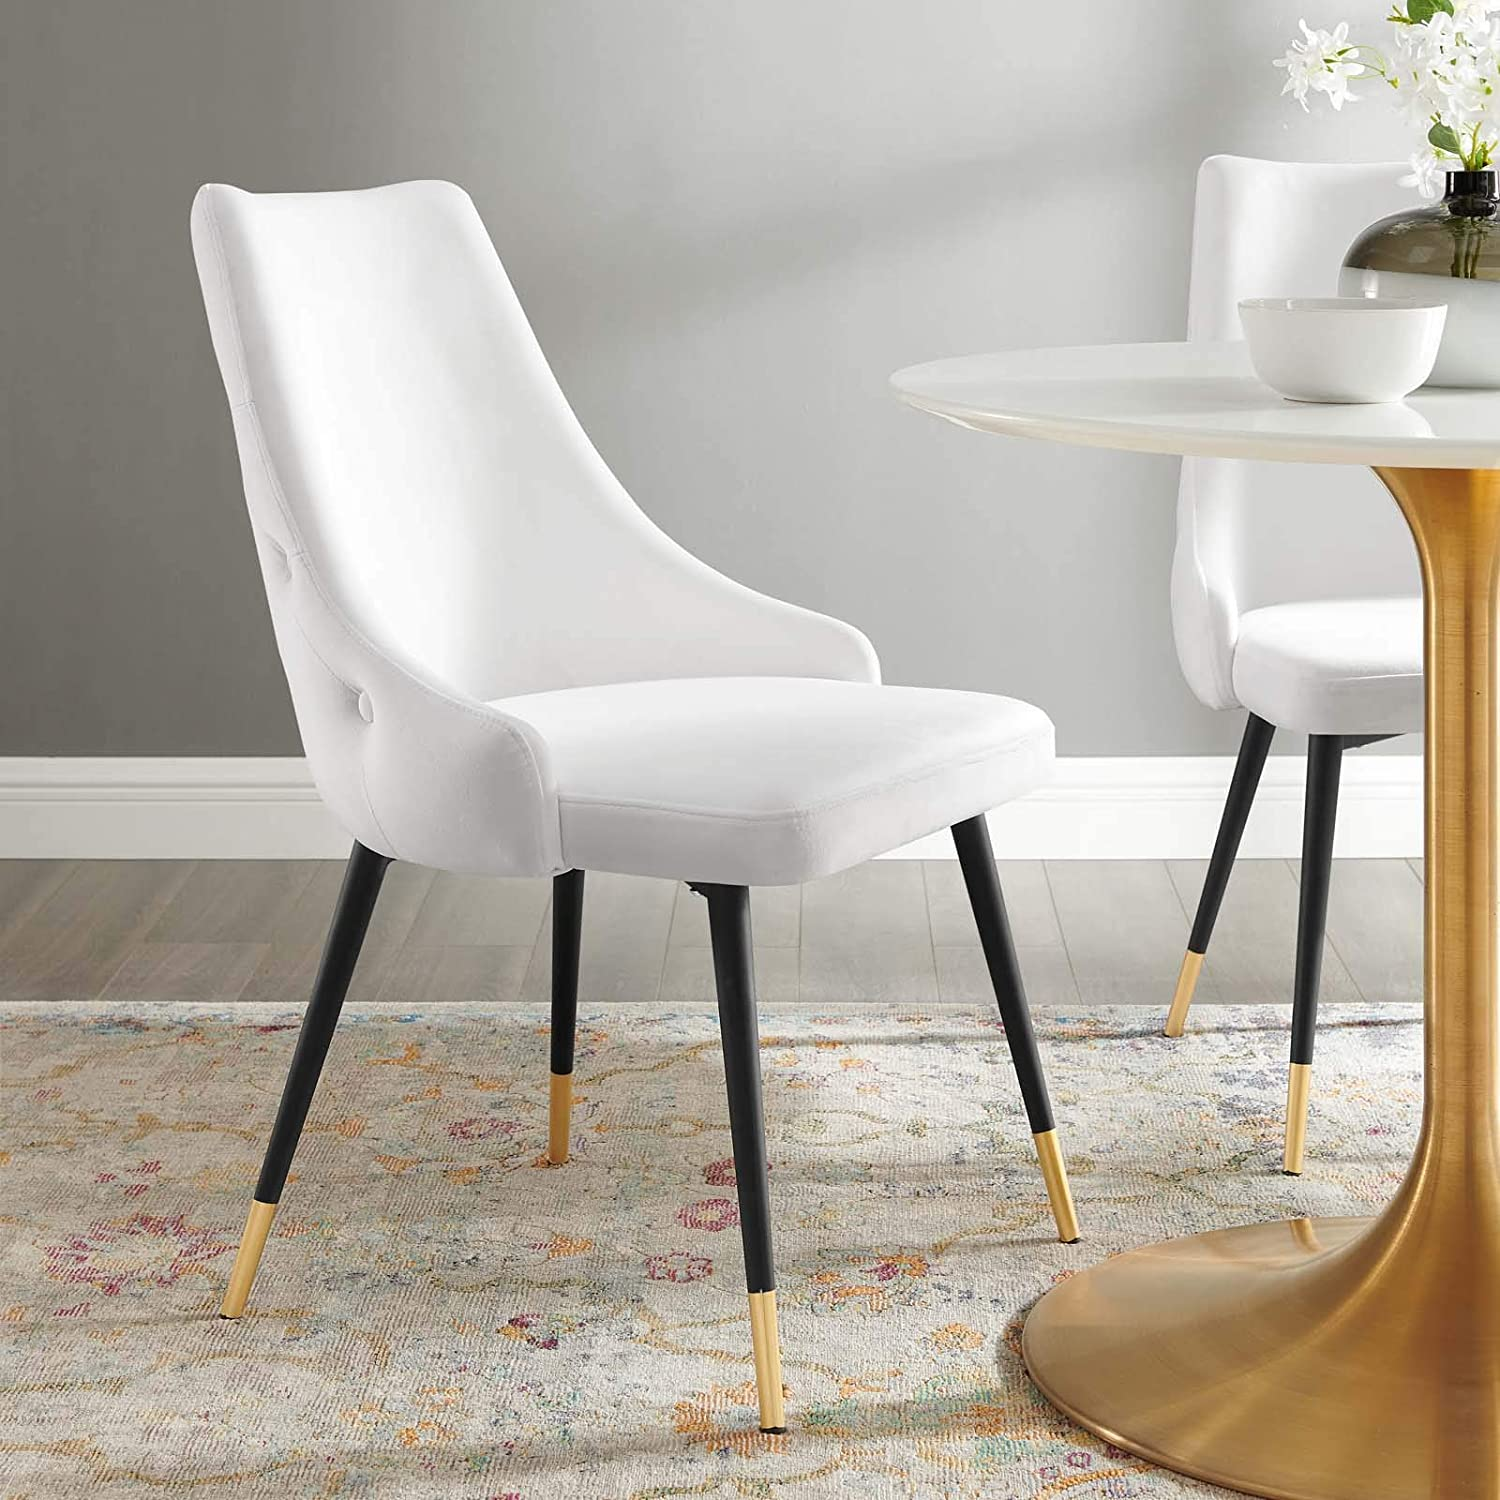 white-upholstered-dining-chair-glamorous-furniture-inspiration-button-tufted-backrest-black-mid-century-modern-legs-gold-feet